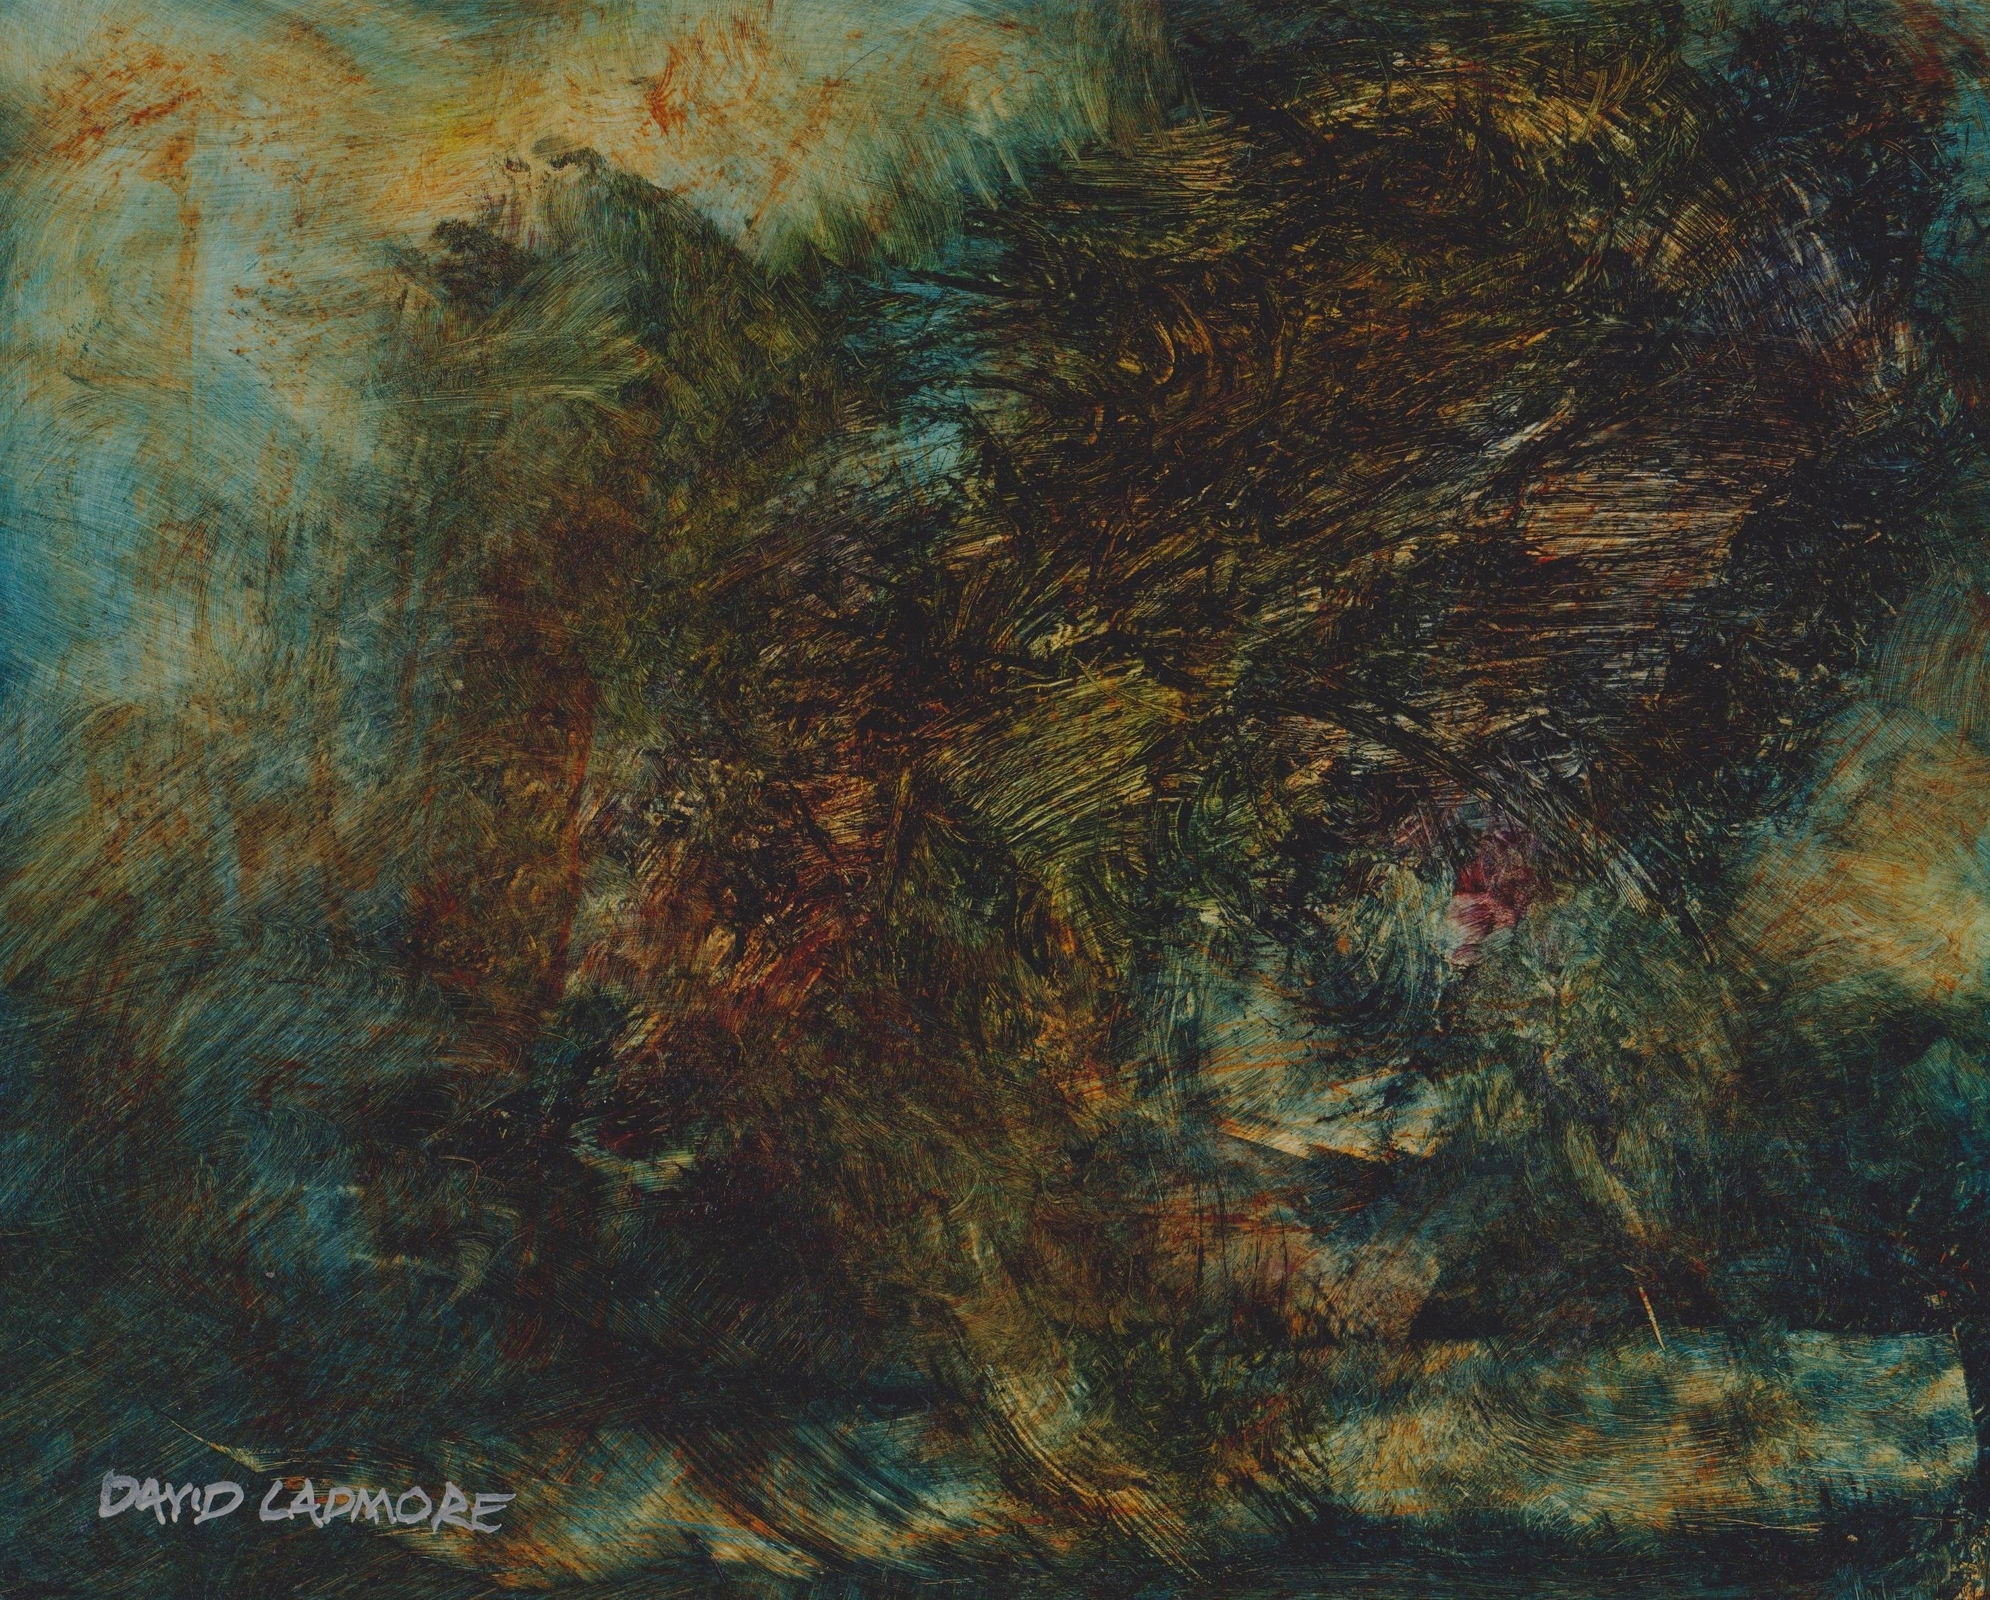 image of landscape oil painting Elemental 61 by David Ladmore